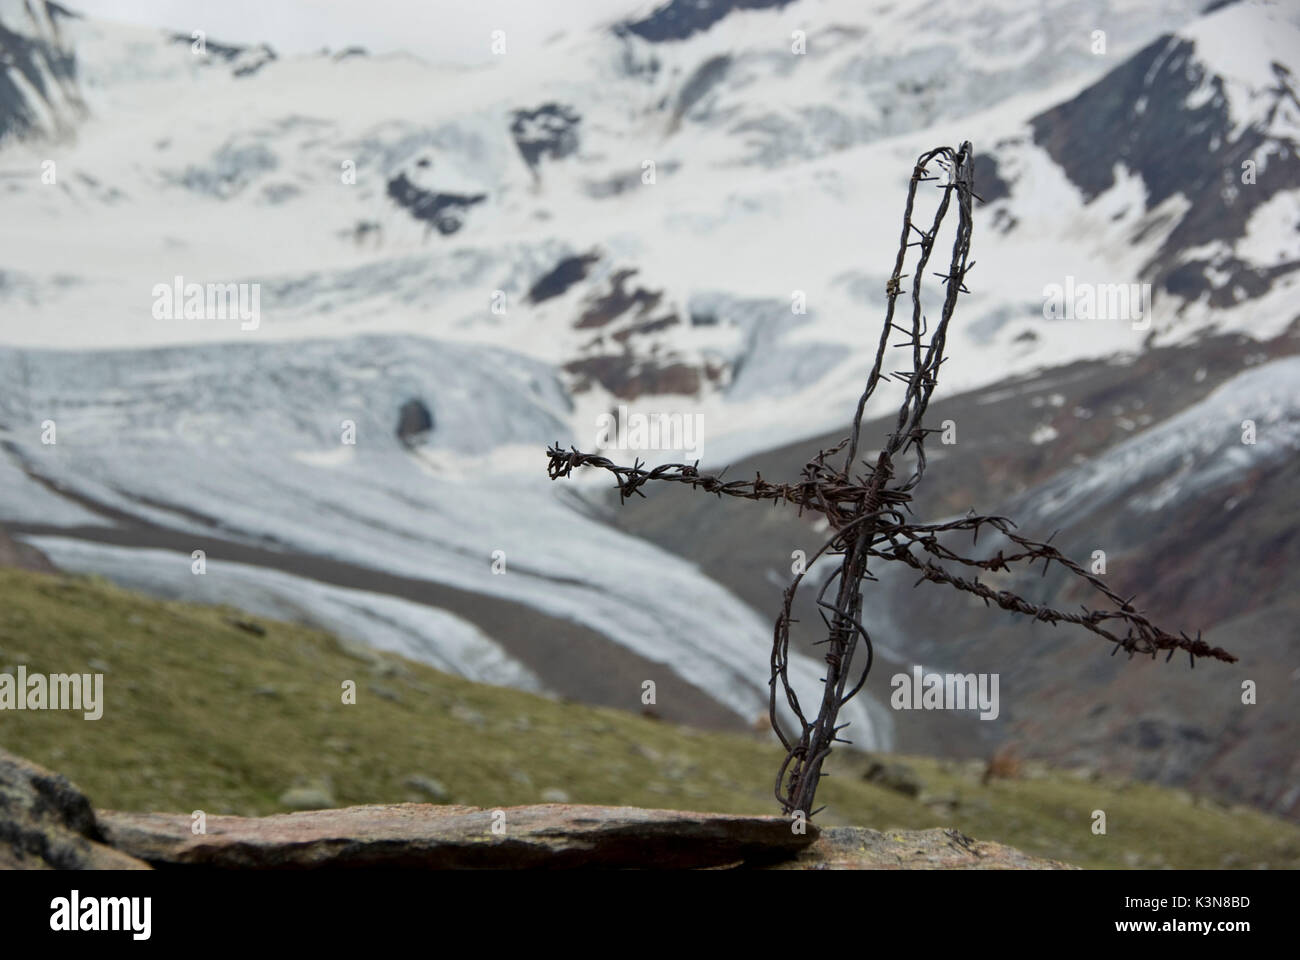 Barbed Wire Fist Stock Photos & Barbed Wire Fist Stock Images - Alamy